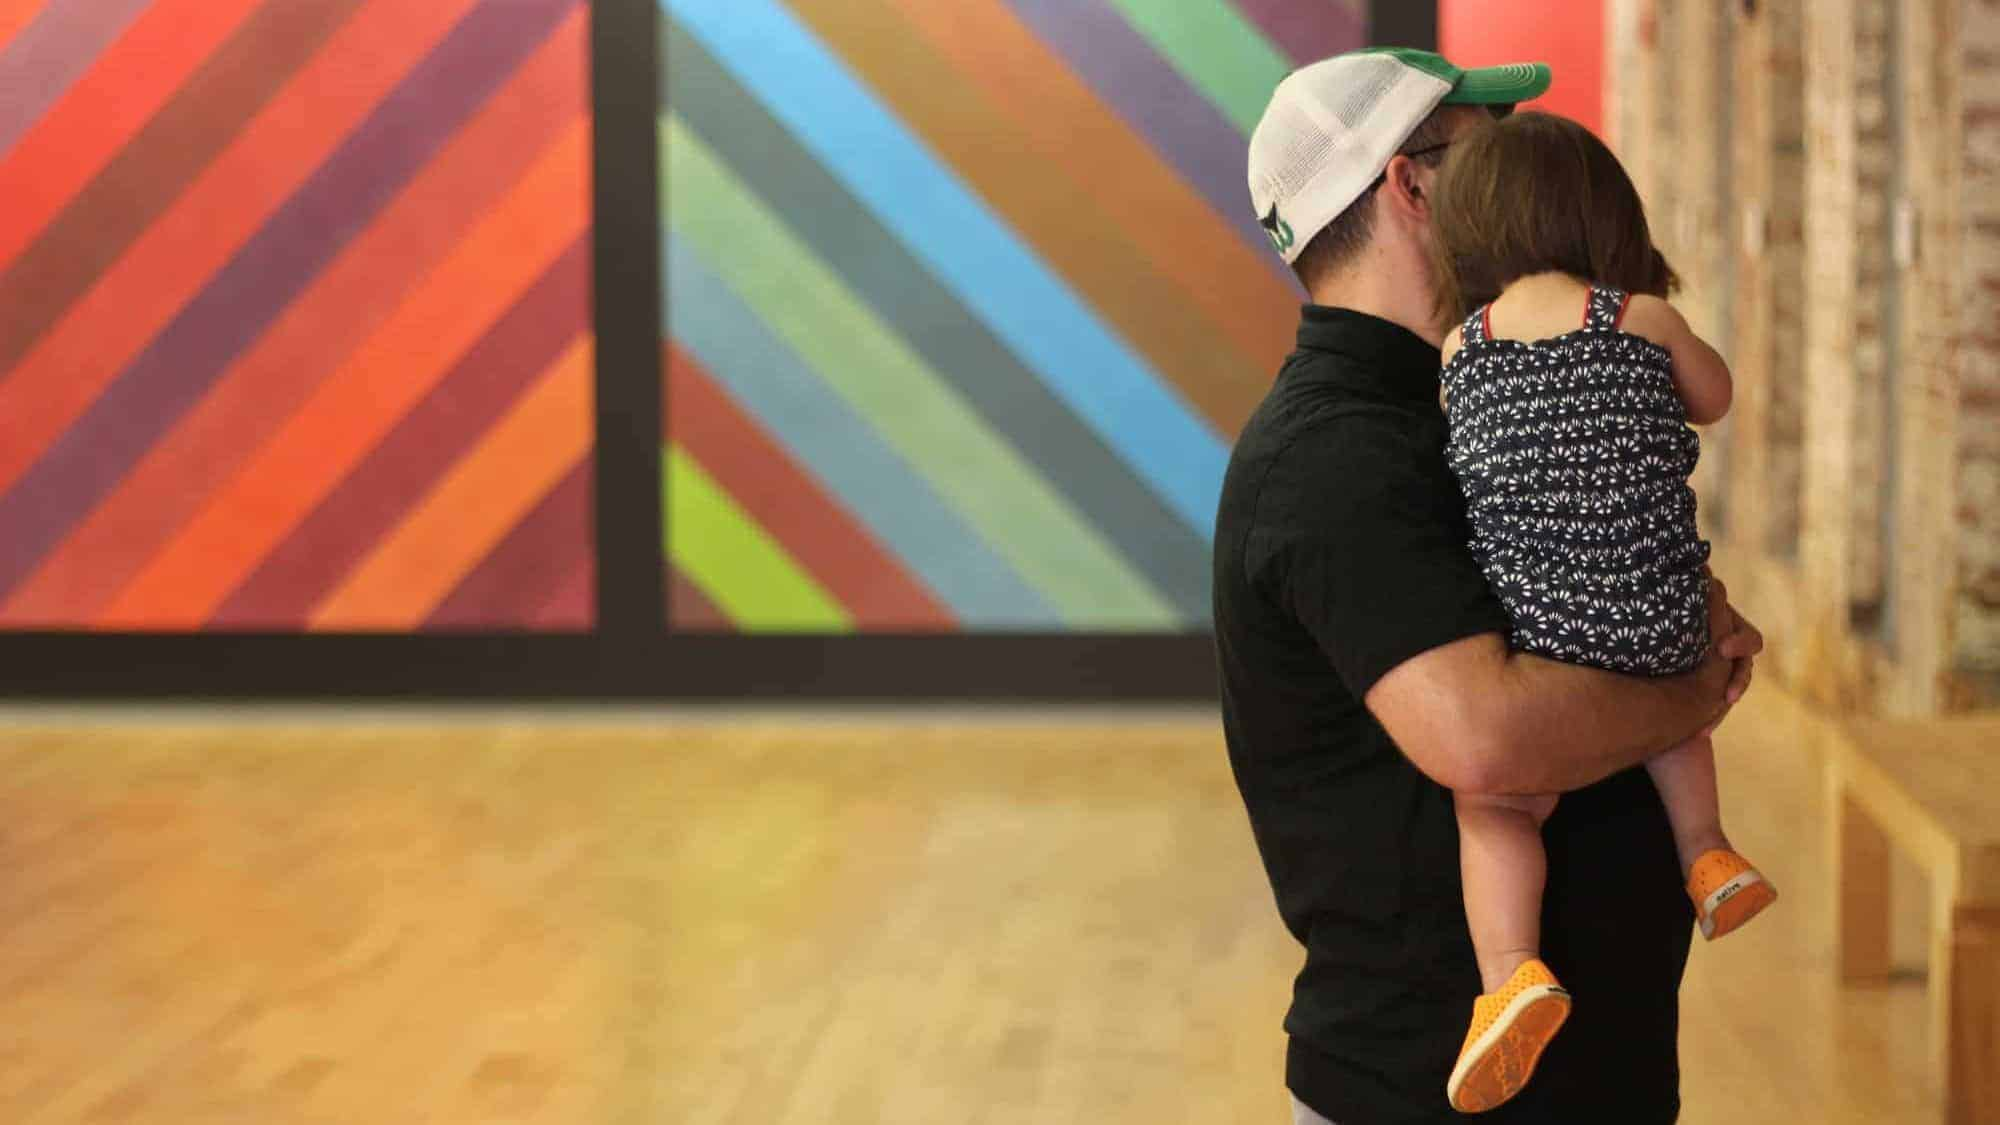 Visitors take in the bright color of Sol Lewitt's murals at Mass MoCA.